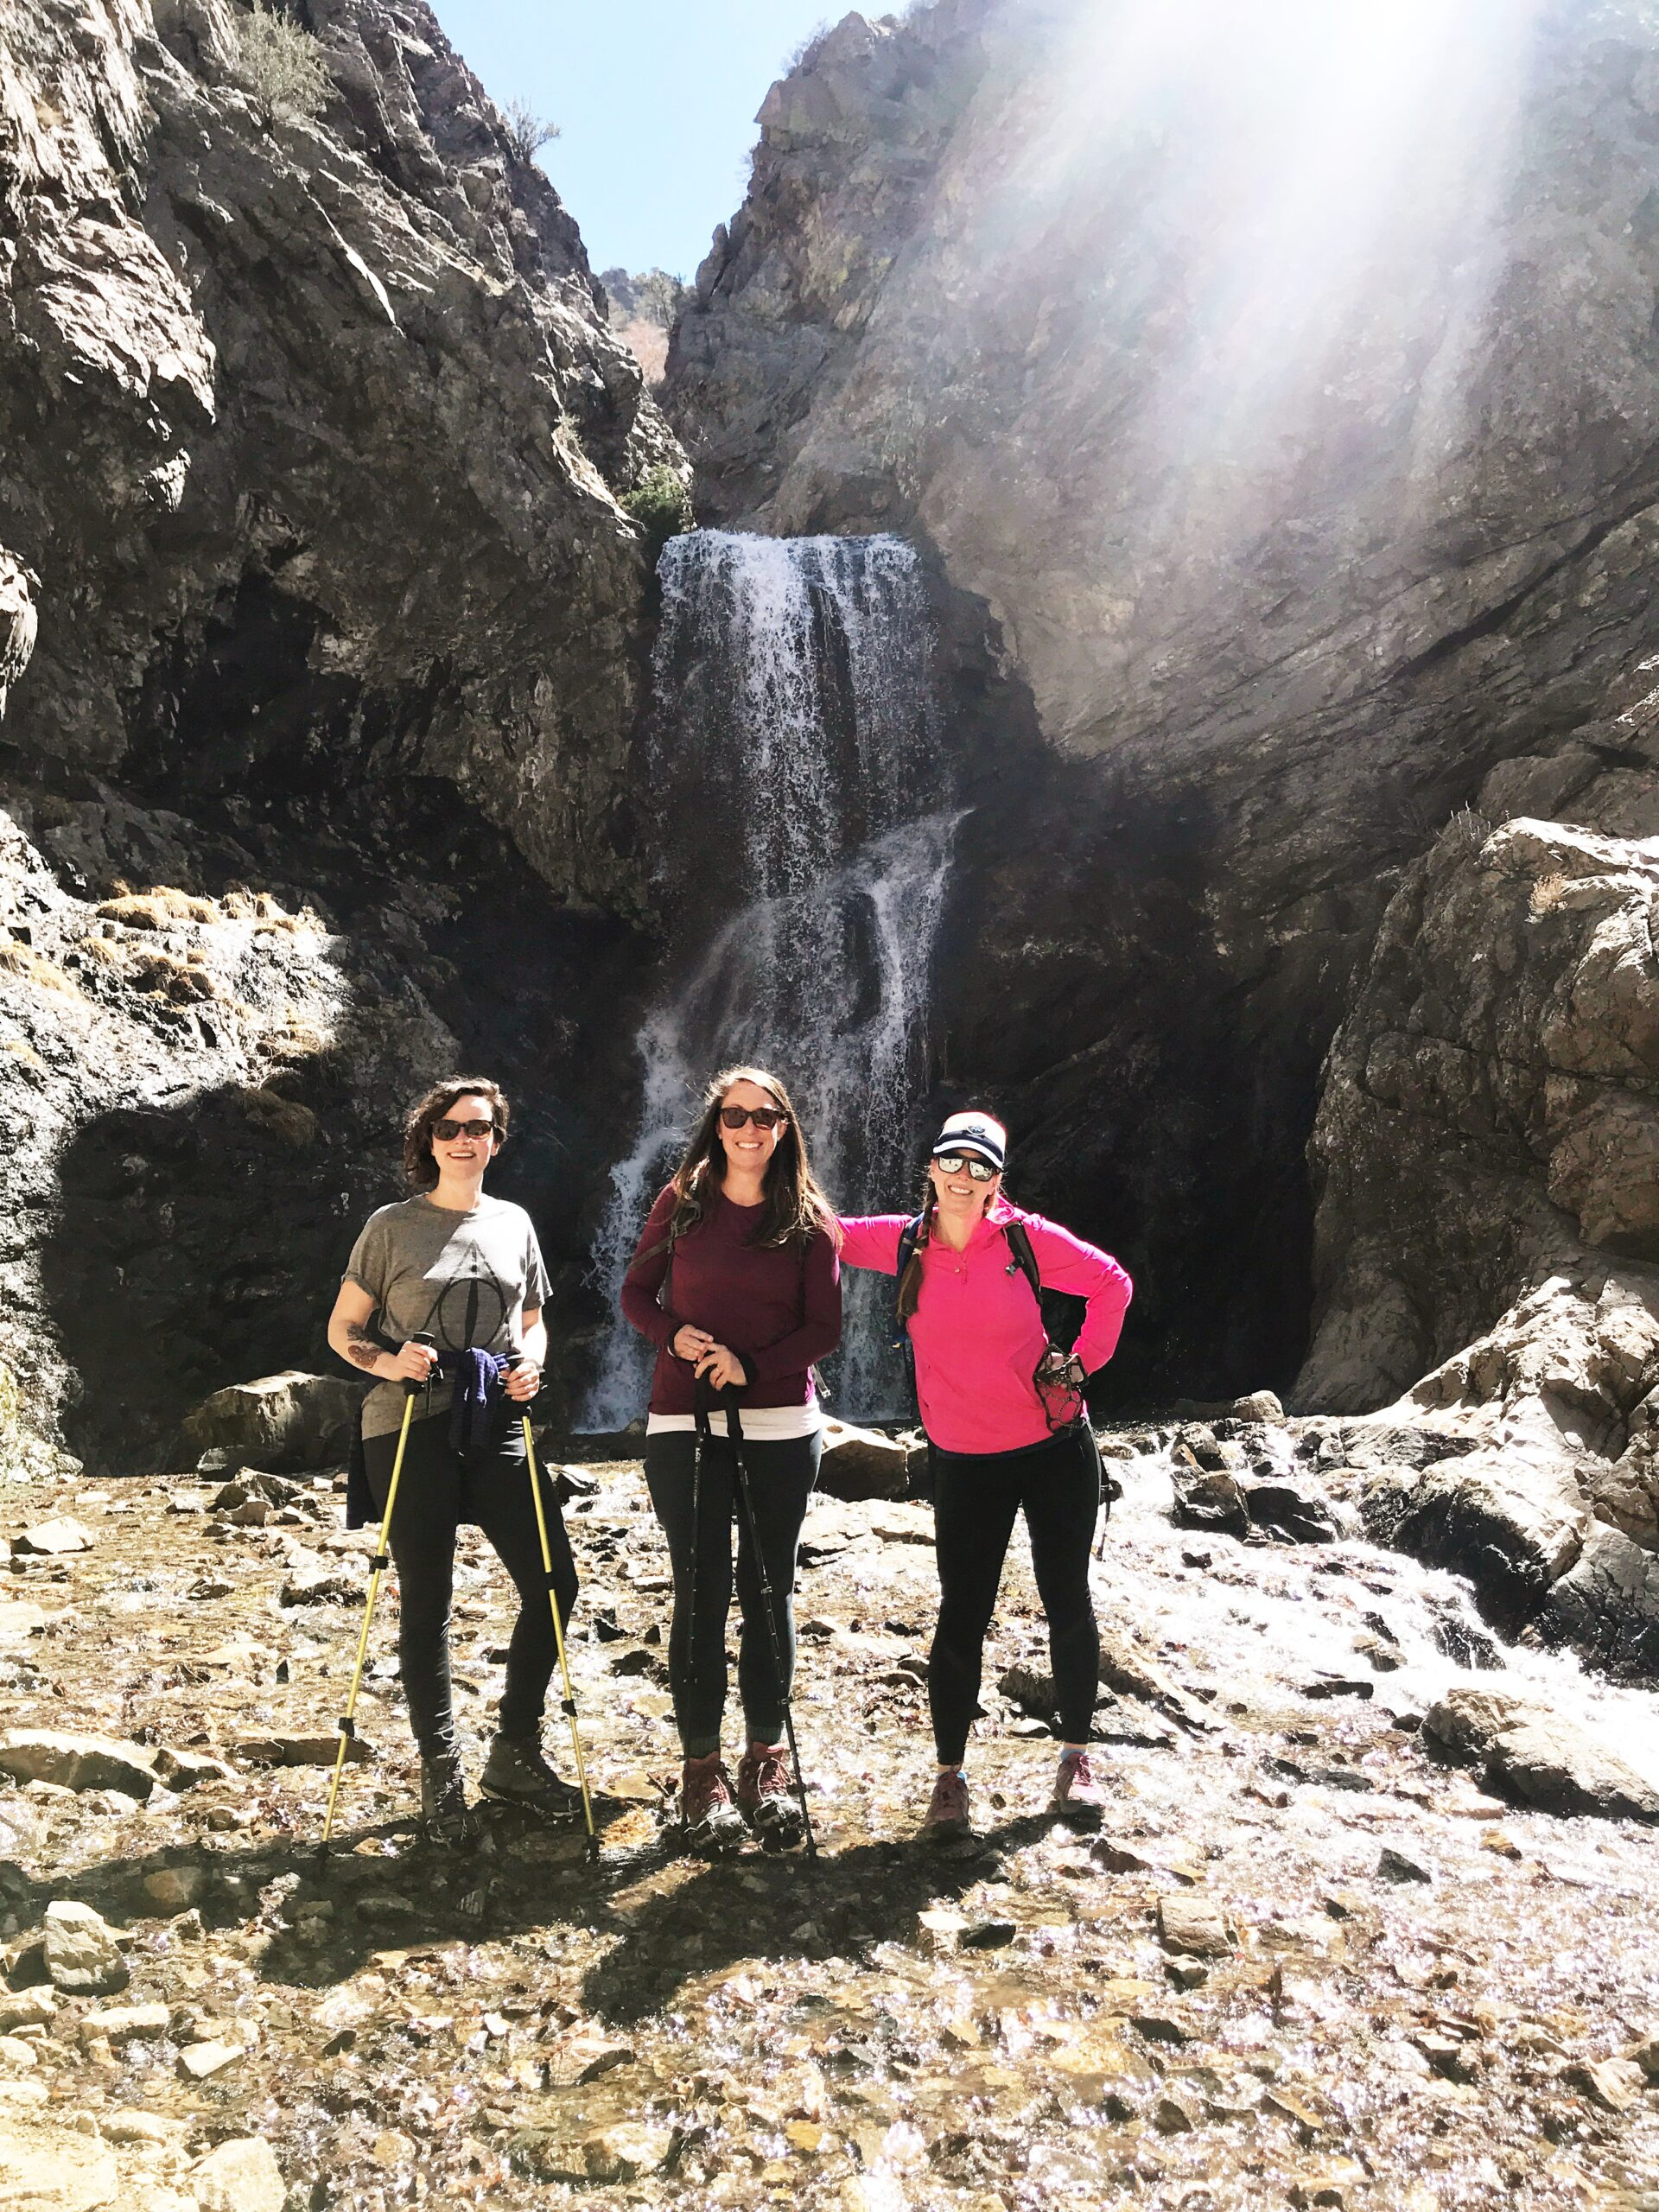 women hikers in front of a waterfall